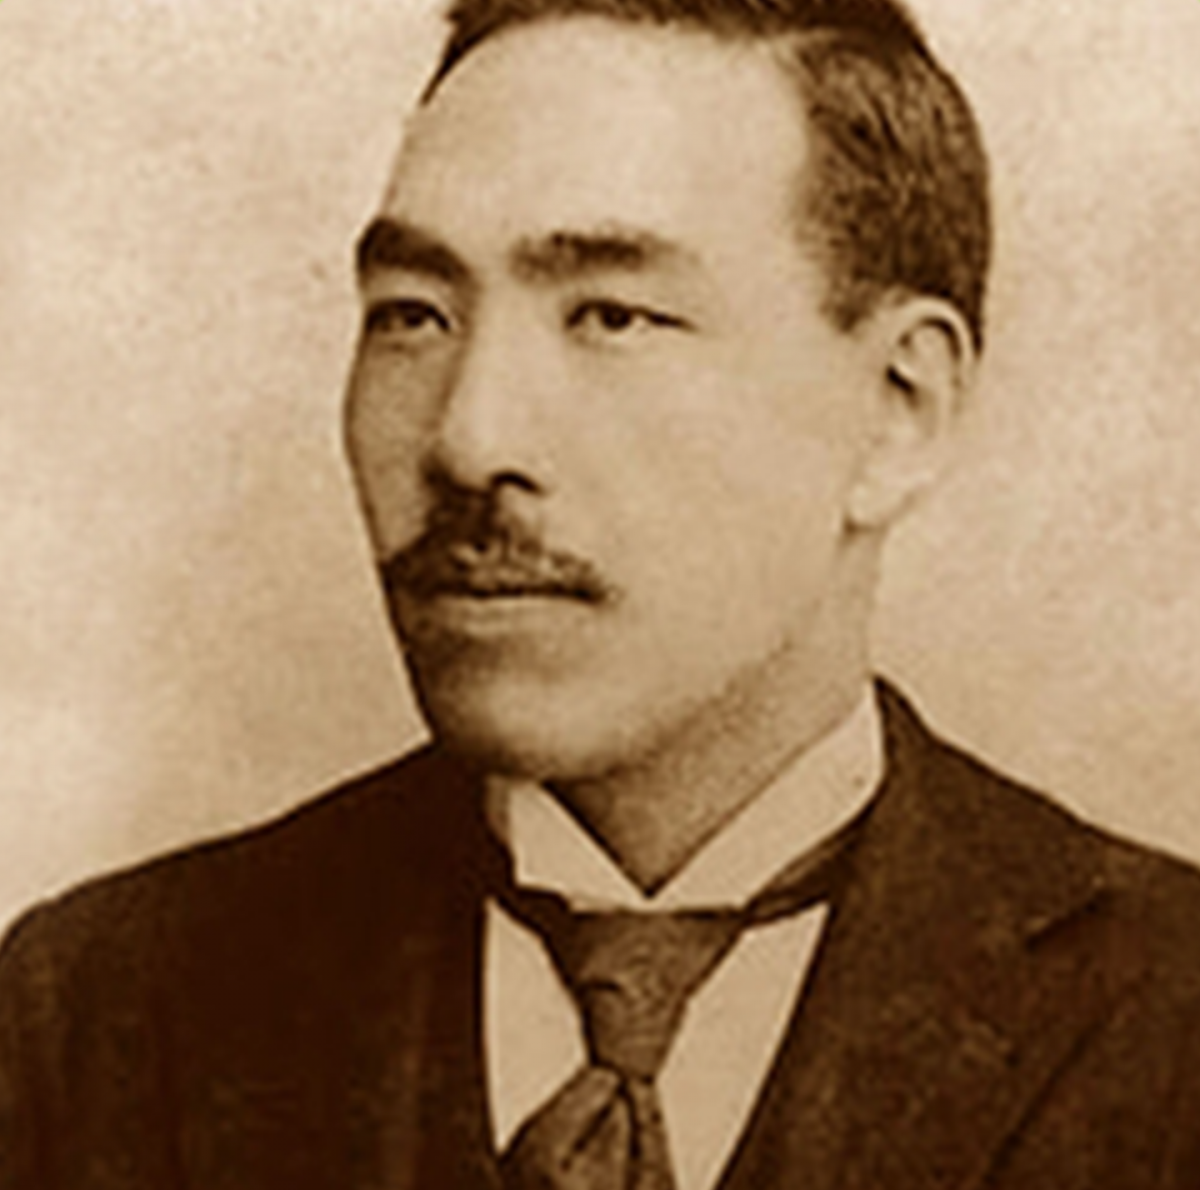 Taichiro Morinaga, the future father of HI-CHEW